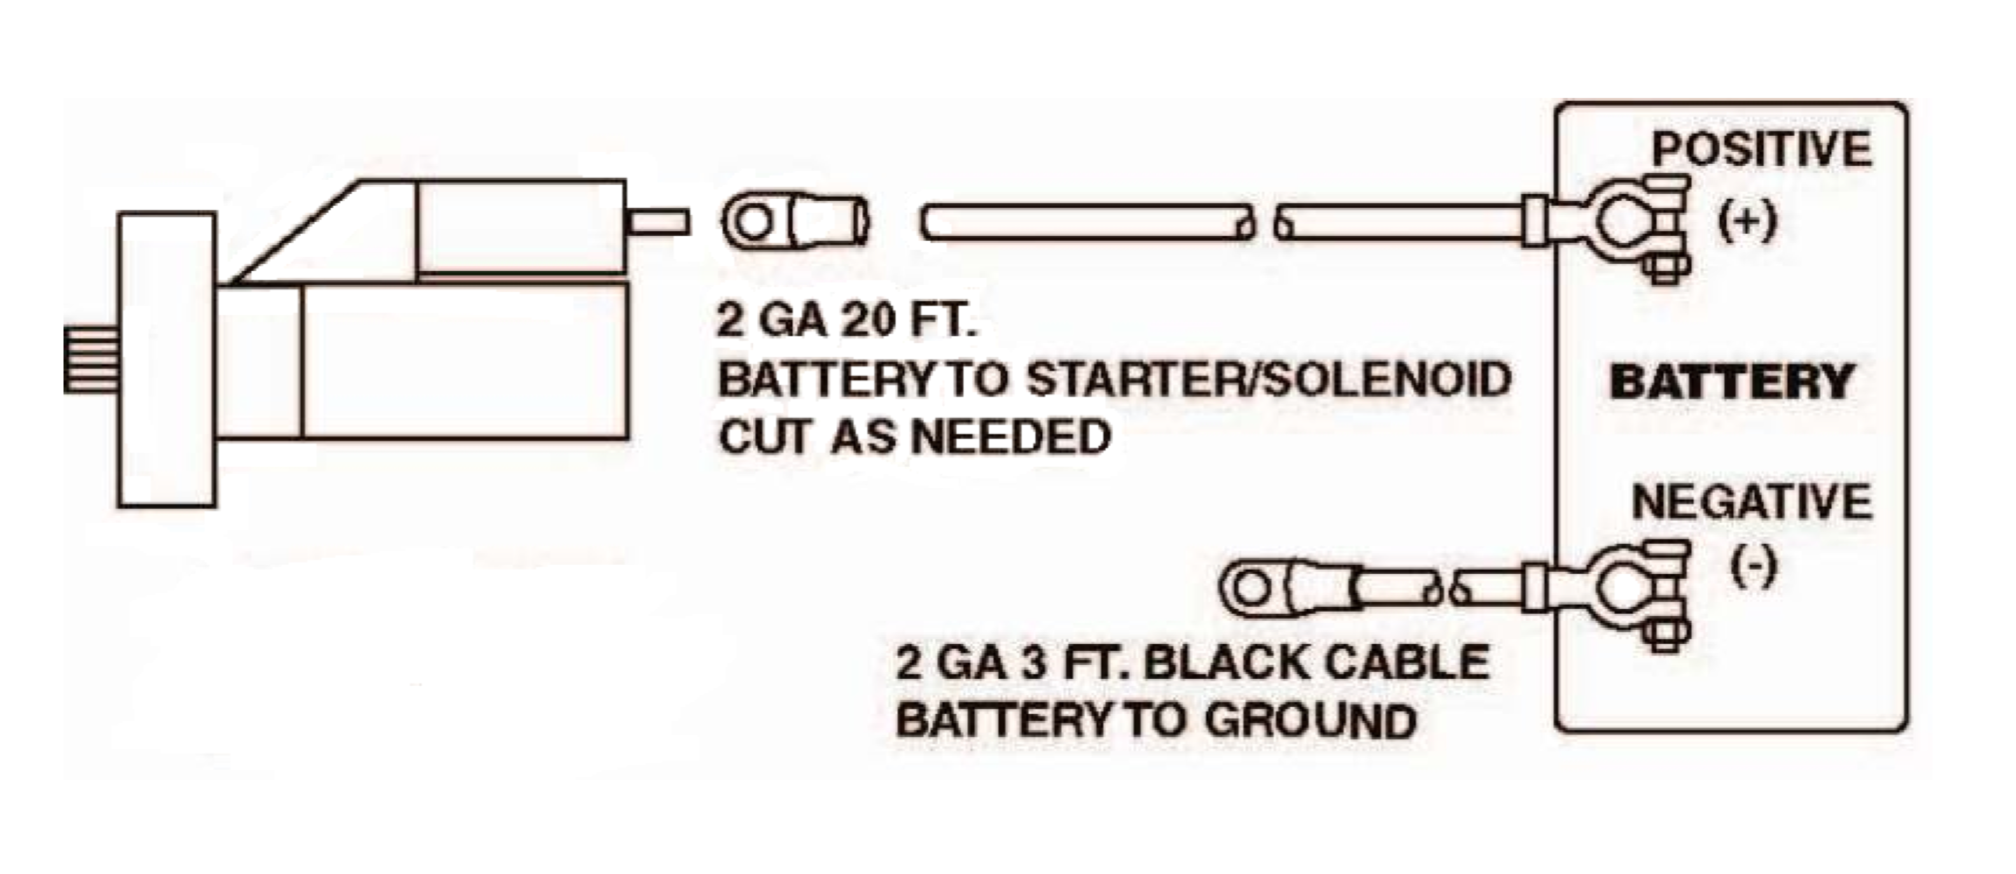 diagram showing proper installation of a single trunk mount battery kit